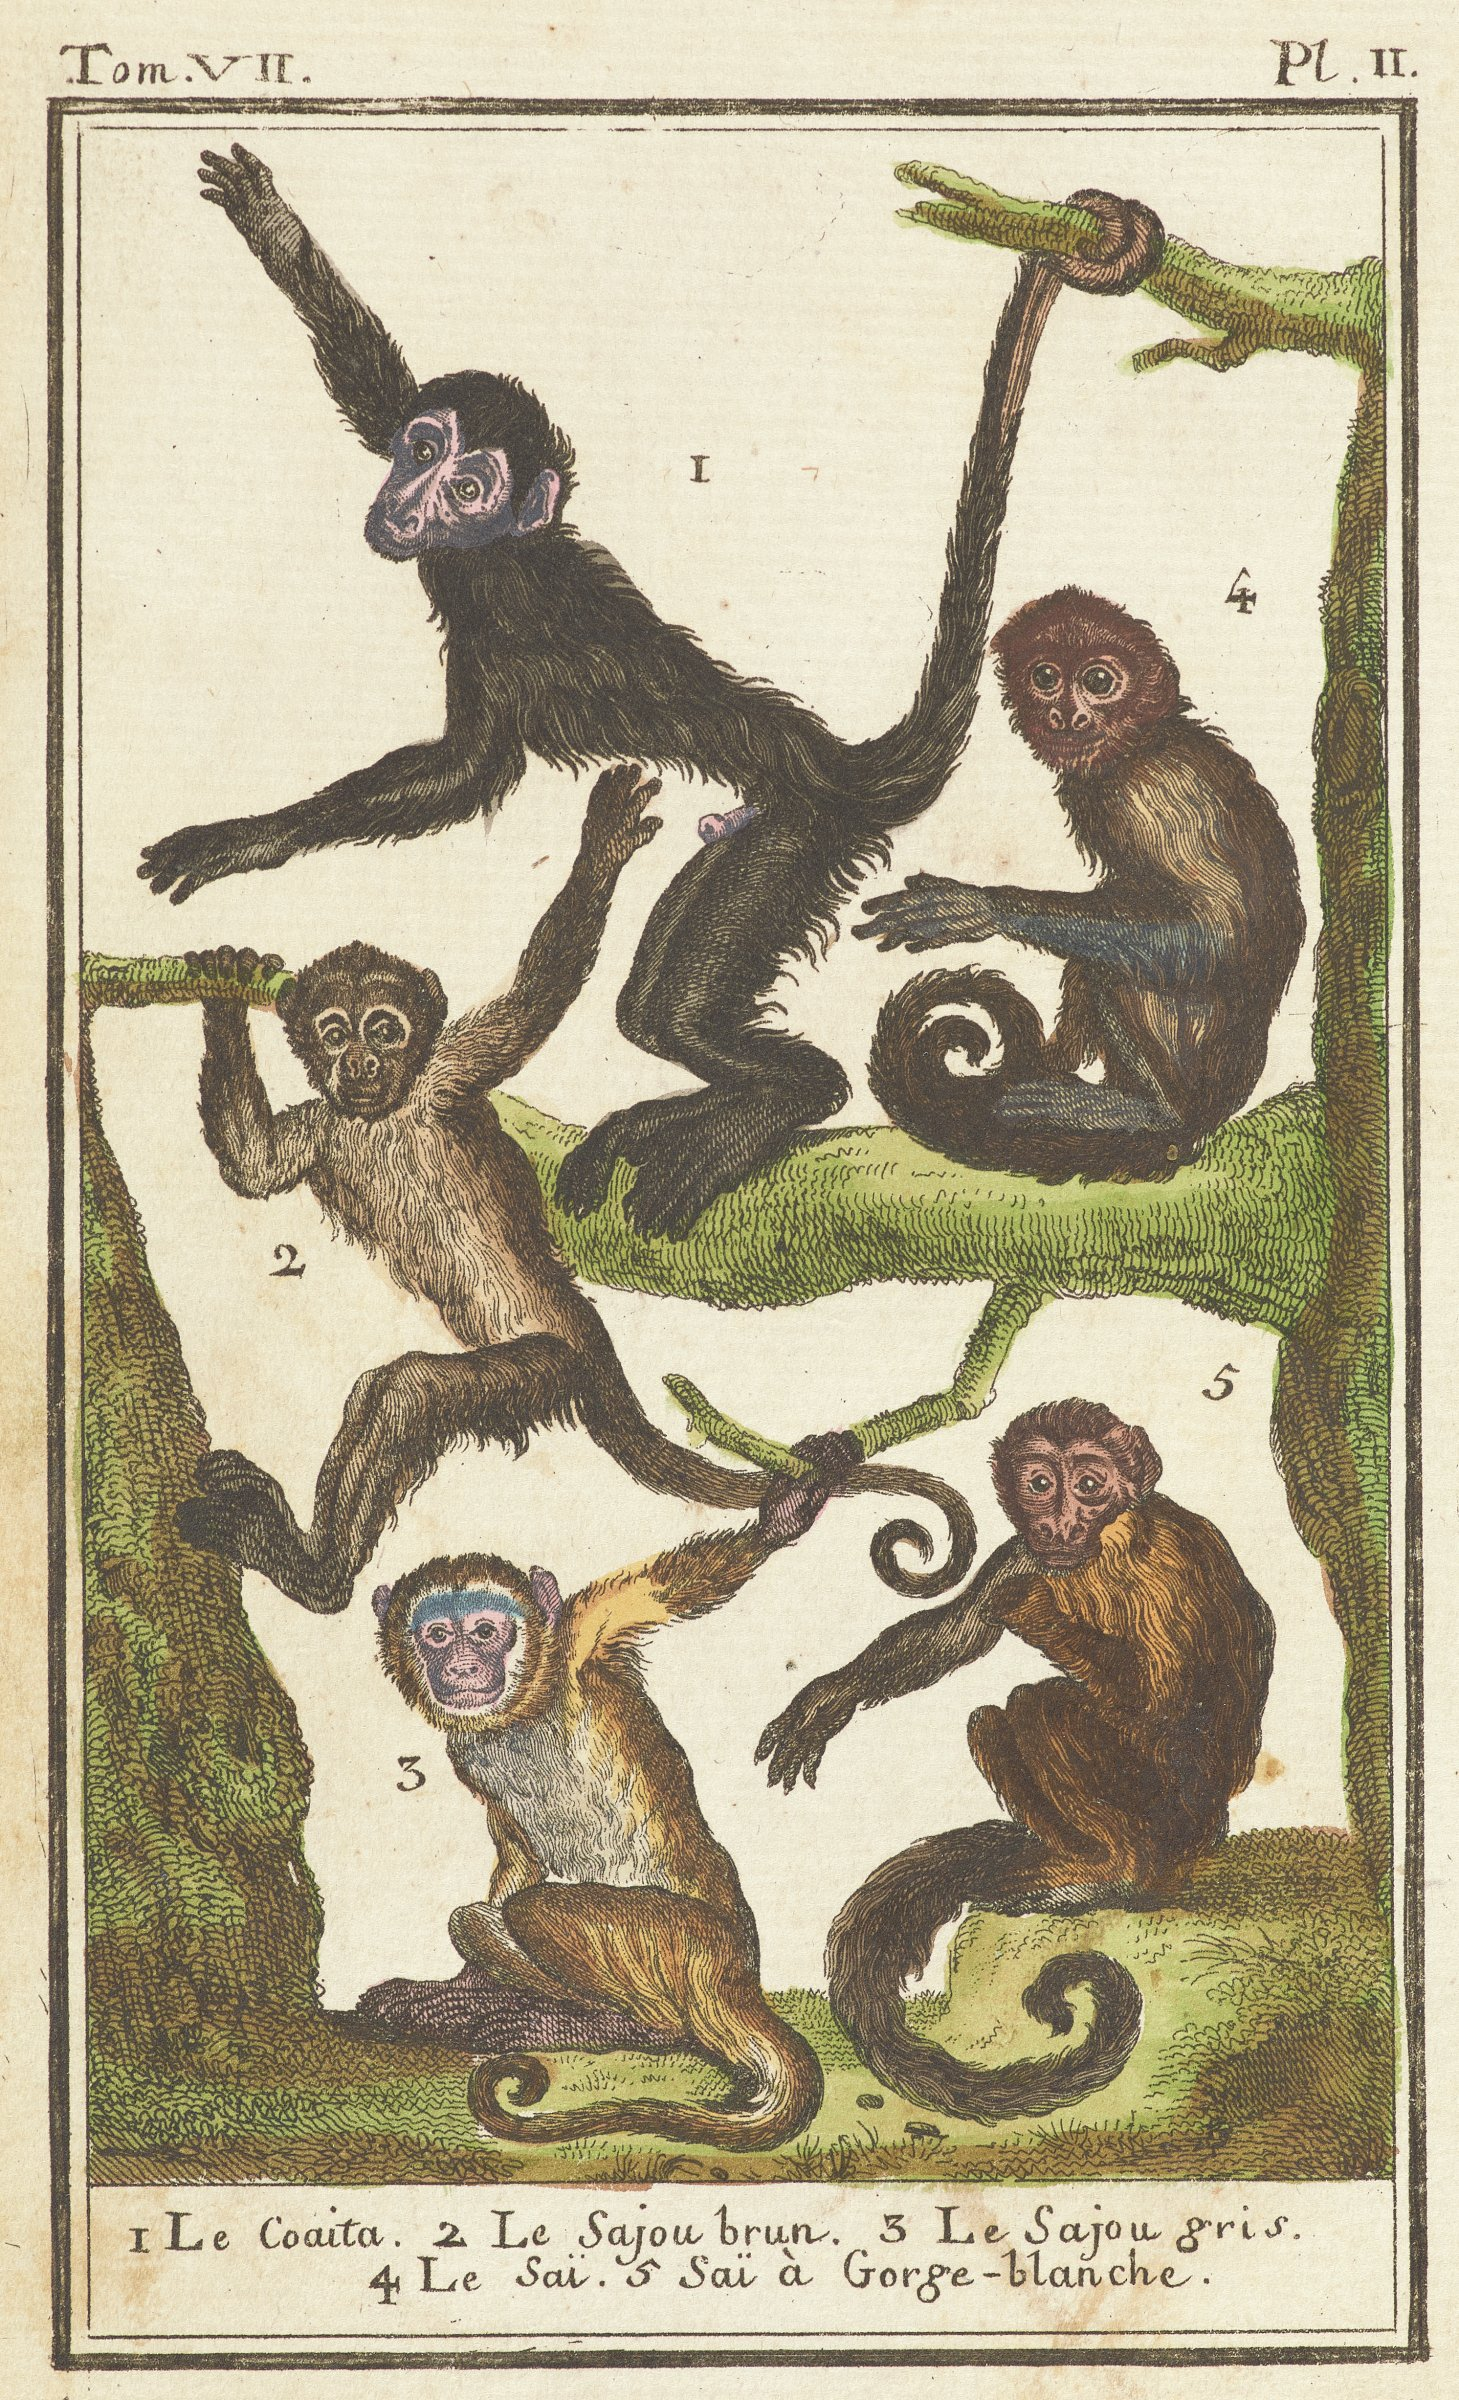 Five monkeys with long curling tails are depcited. They vary in color from black, brown, and yellow.